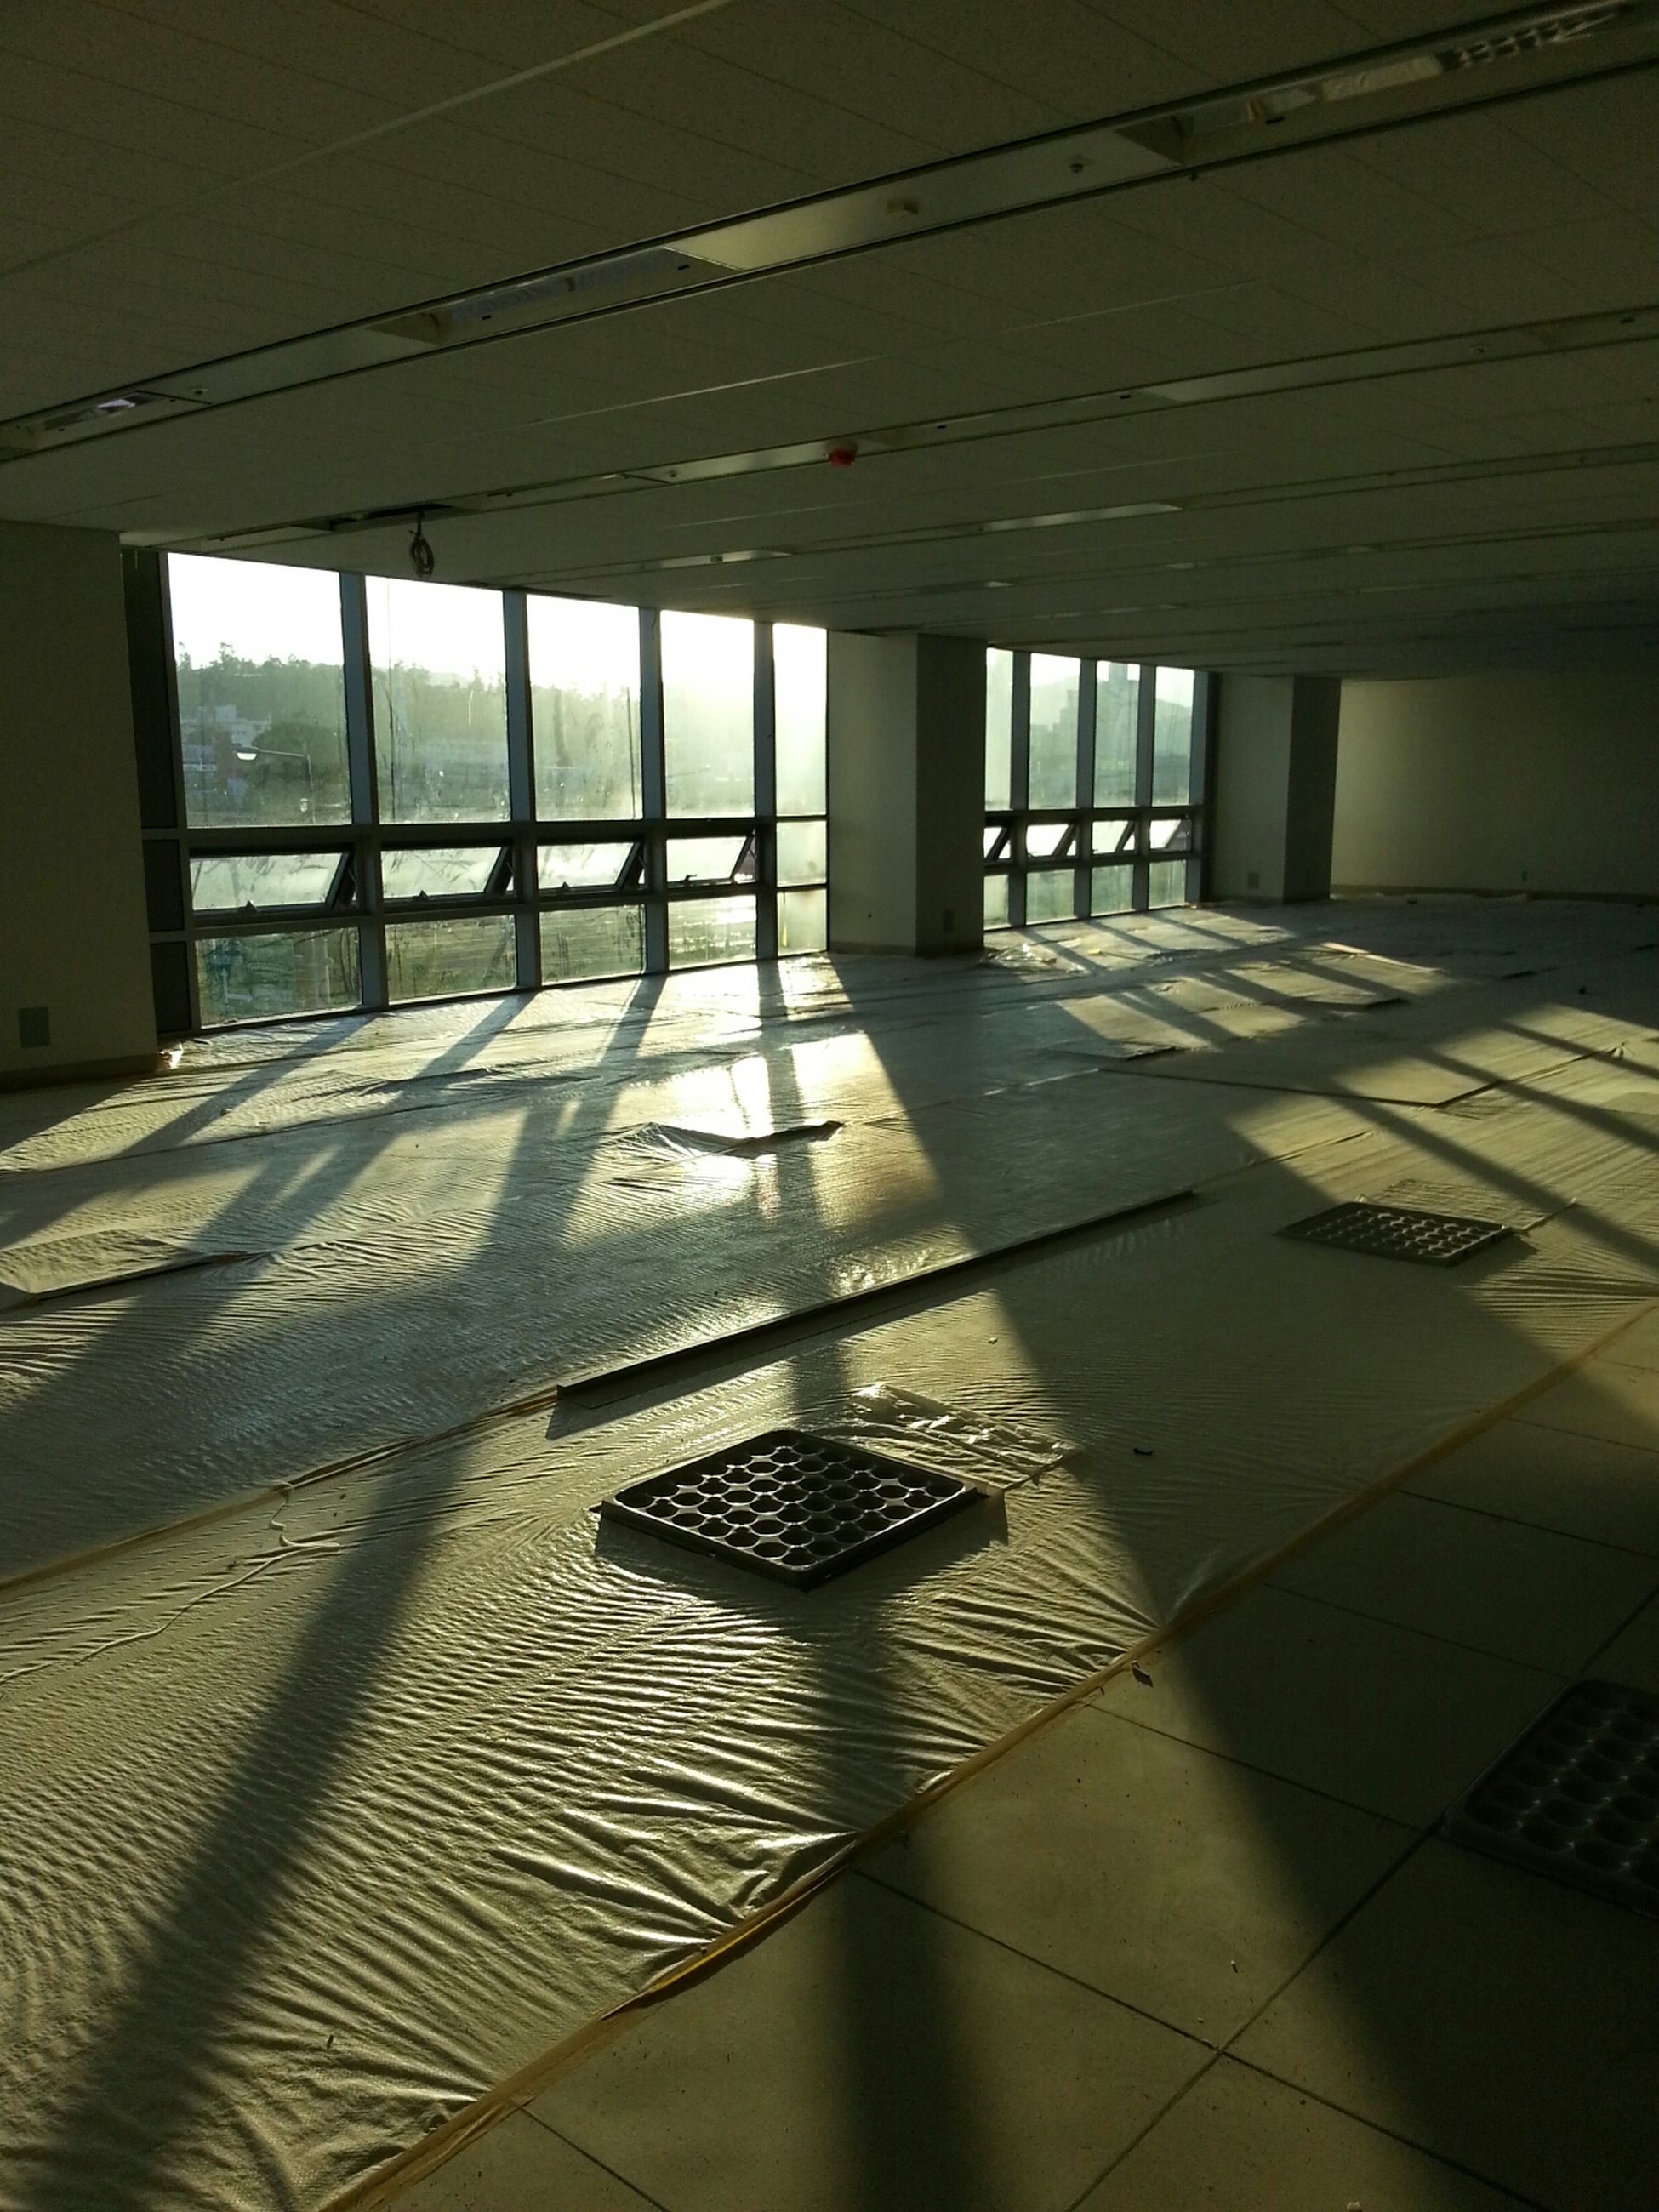 architecture, built structure, indoors, sunlight, shadow, ceiling, window, glass - material, architectural column, sun, flooring, no people, sunset, sunbeam, building exterior, sky, modern, day, reflection, empty